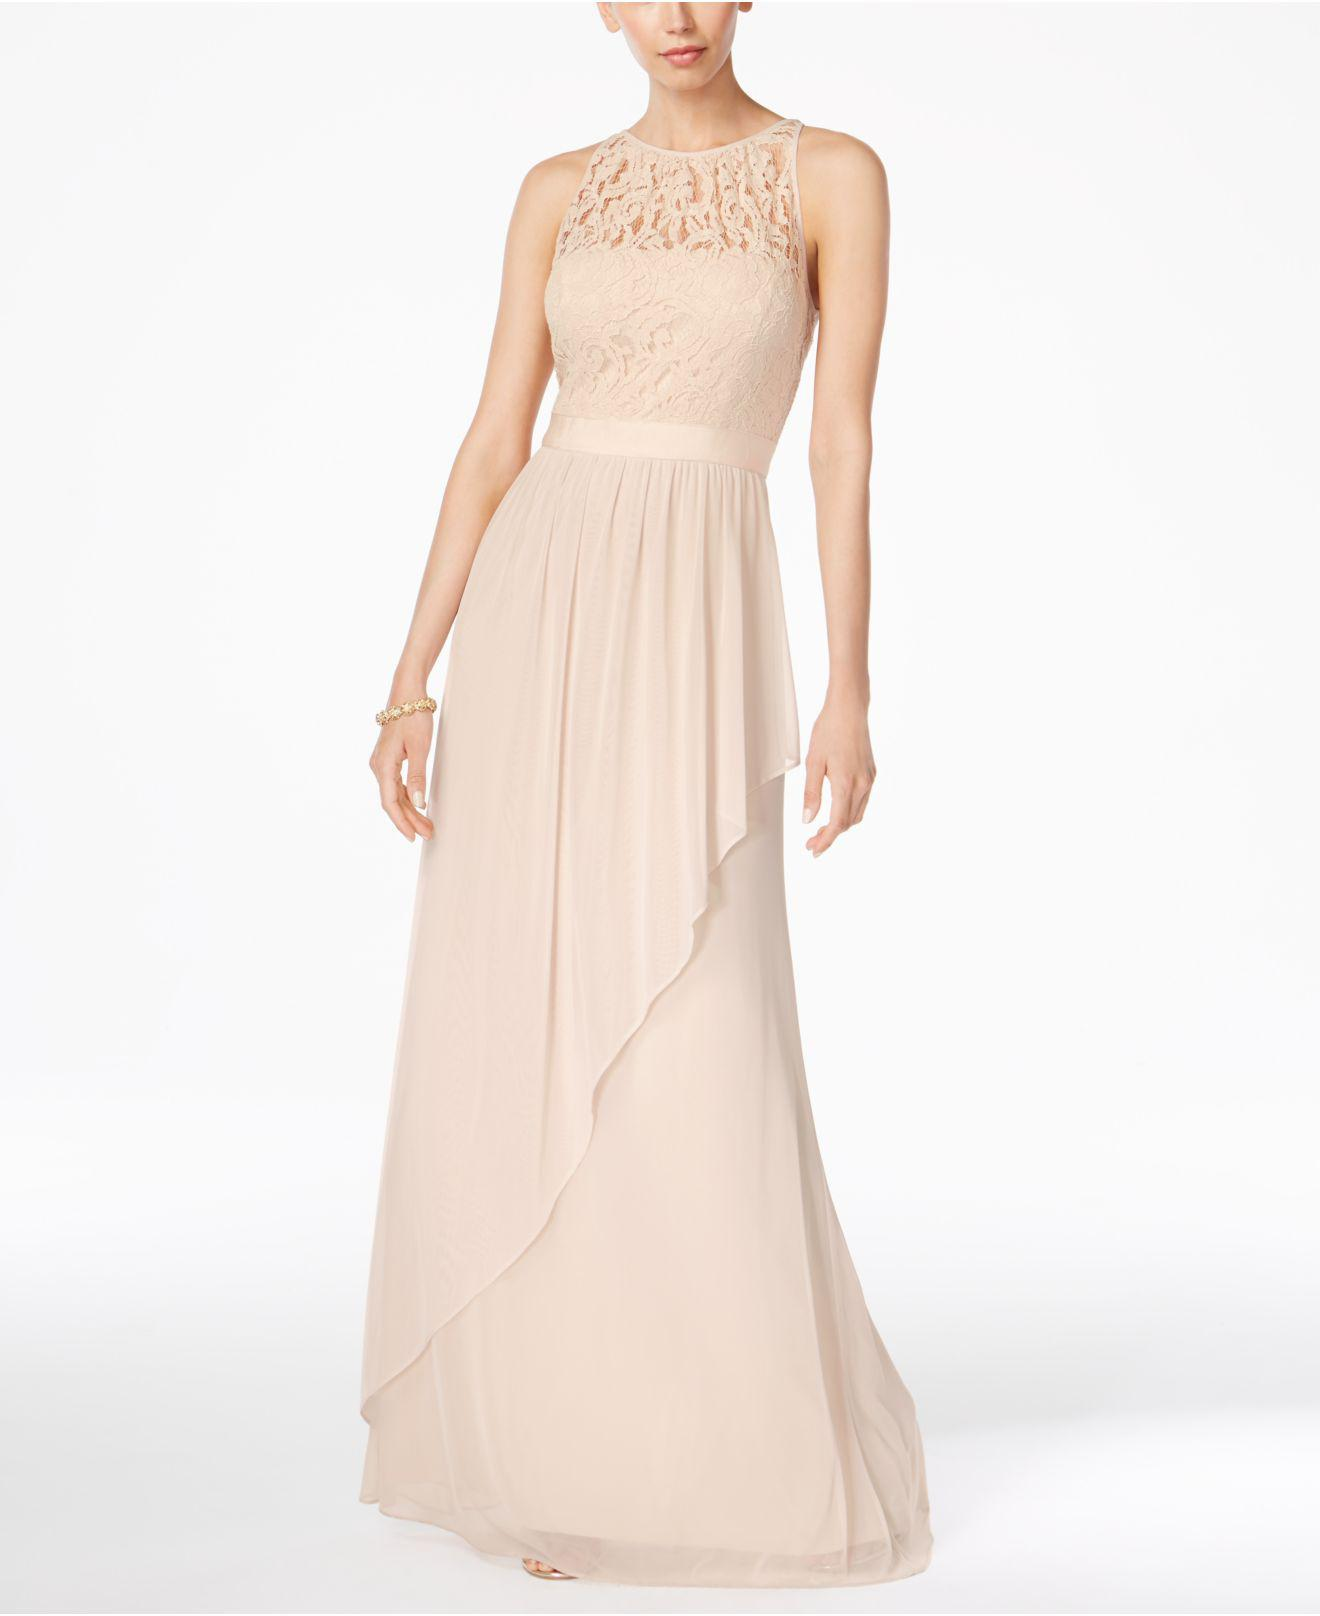 7bb3bace7f74 Lyst - Adrianna Papell Lace Illusion Halterneck Gown in Natural